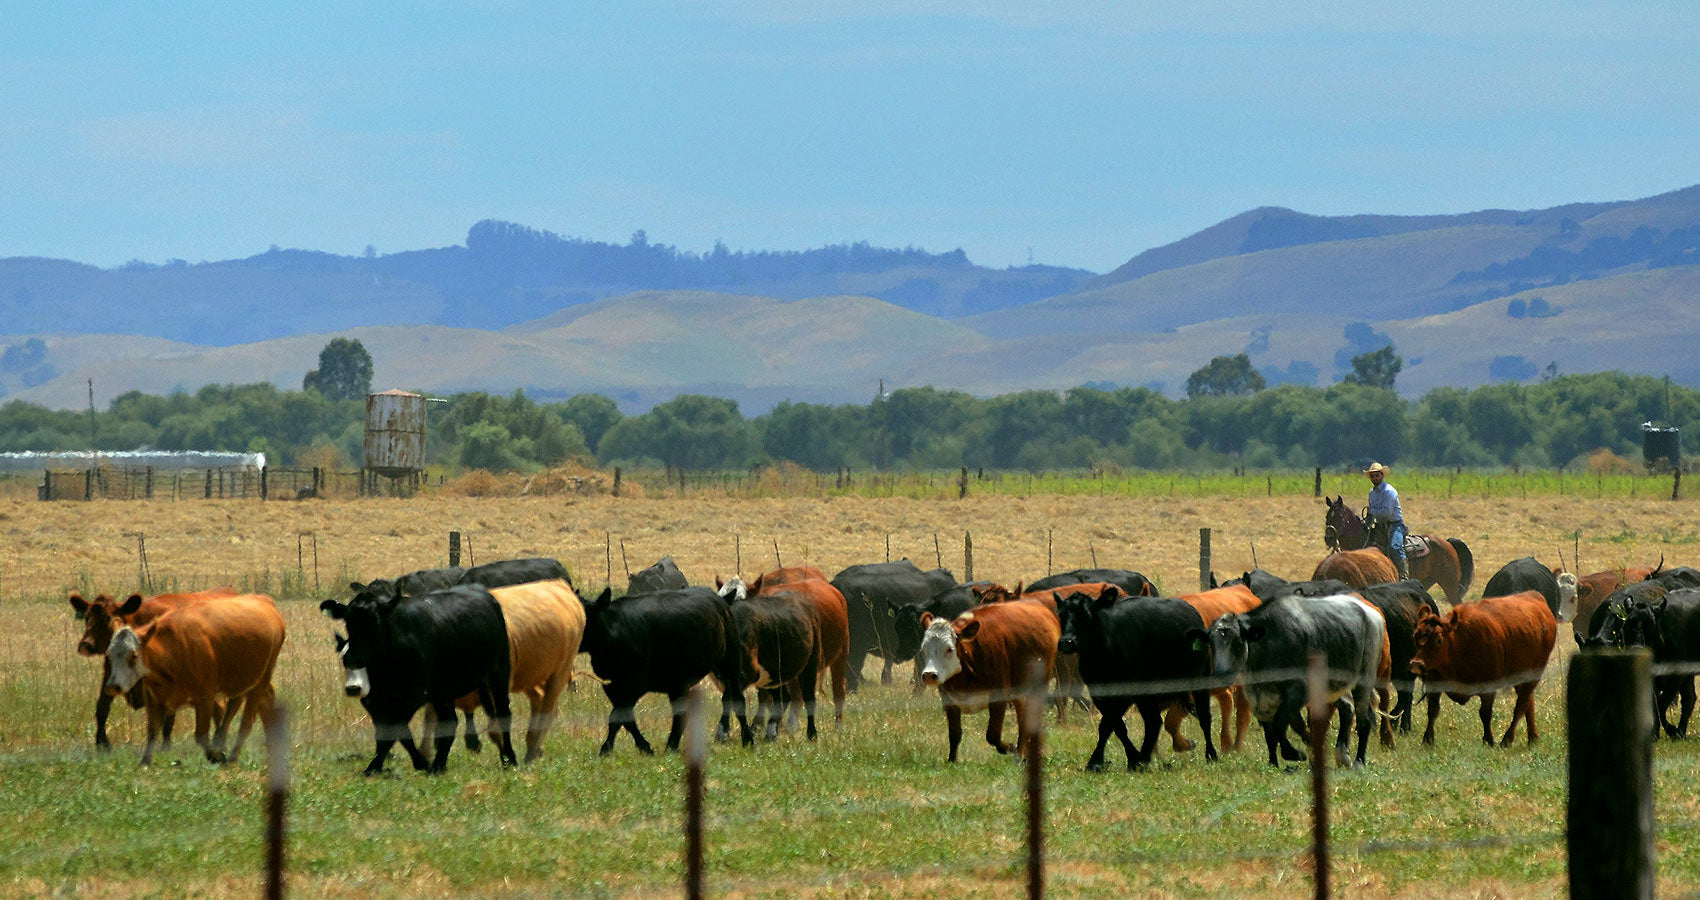 Grass-fed and grass-finished cattle farm in California